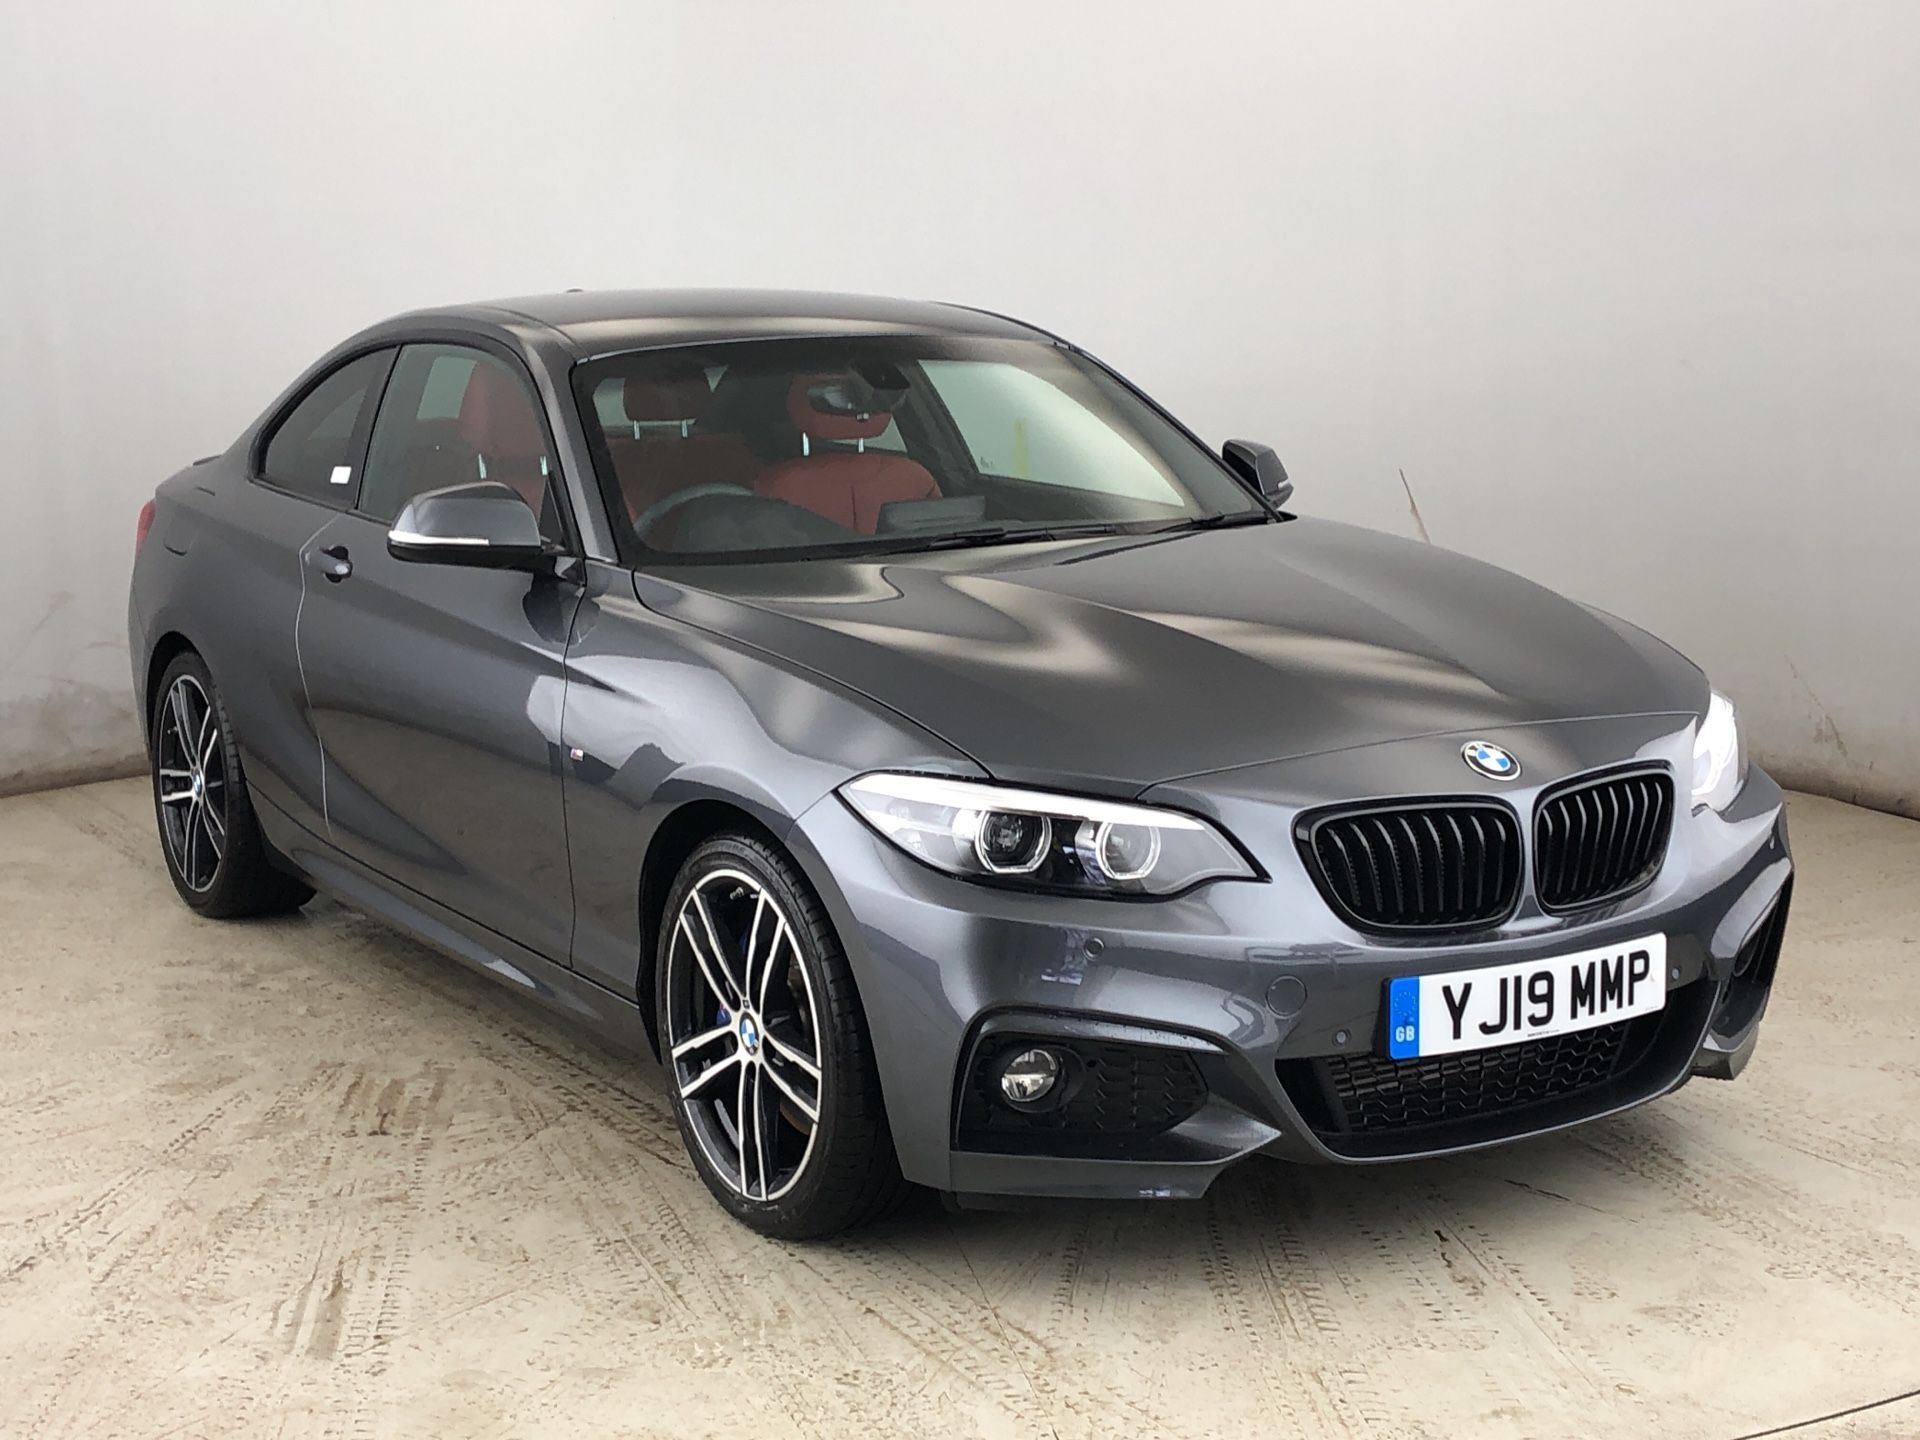 Image 1 - BMW 218d M Sport Coupe (YJ19MMP)